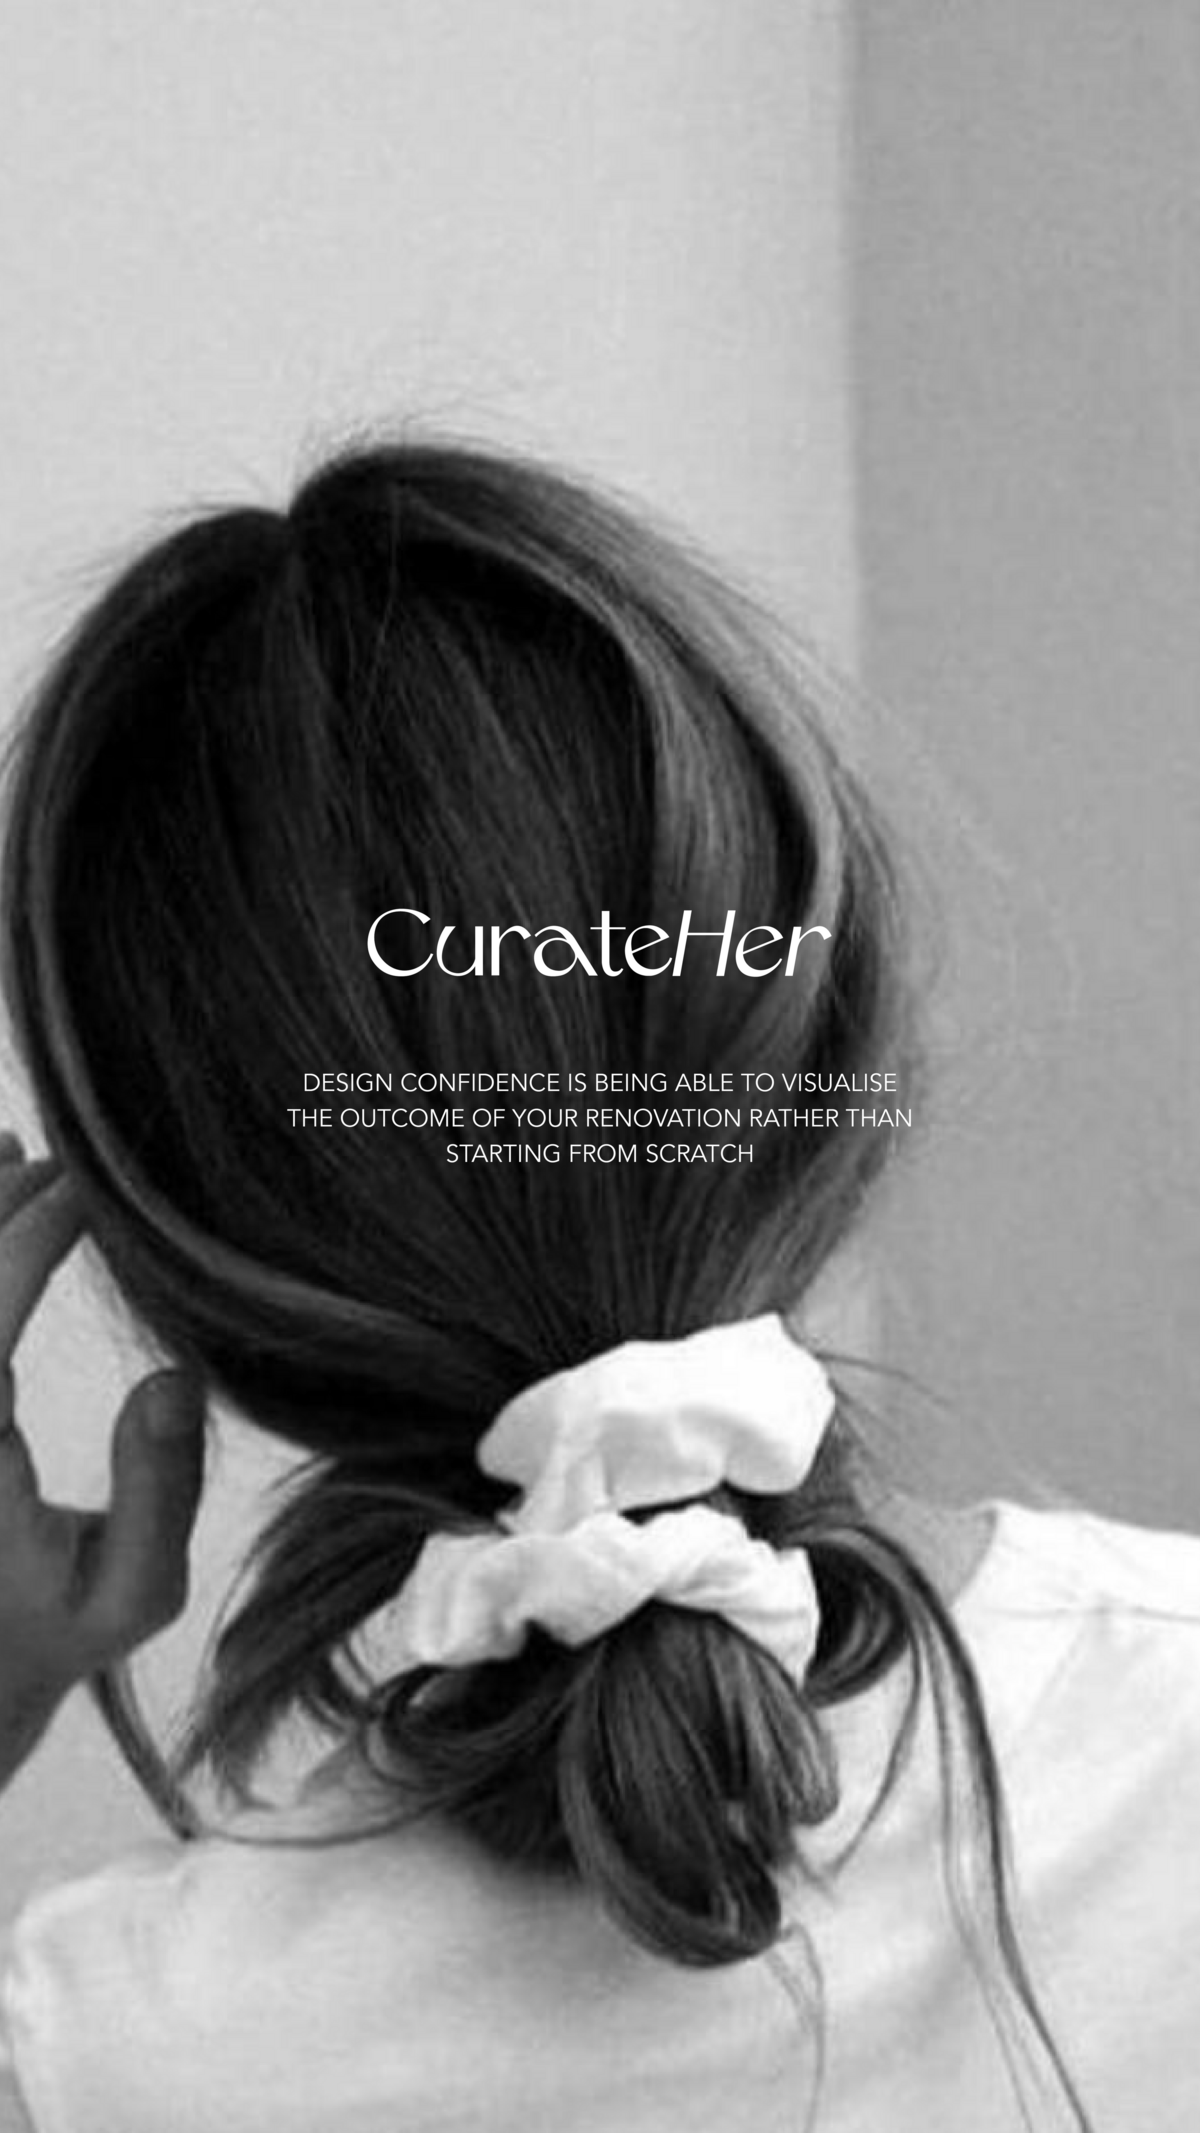 CurateHer_Teaser2_STORY